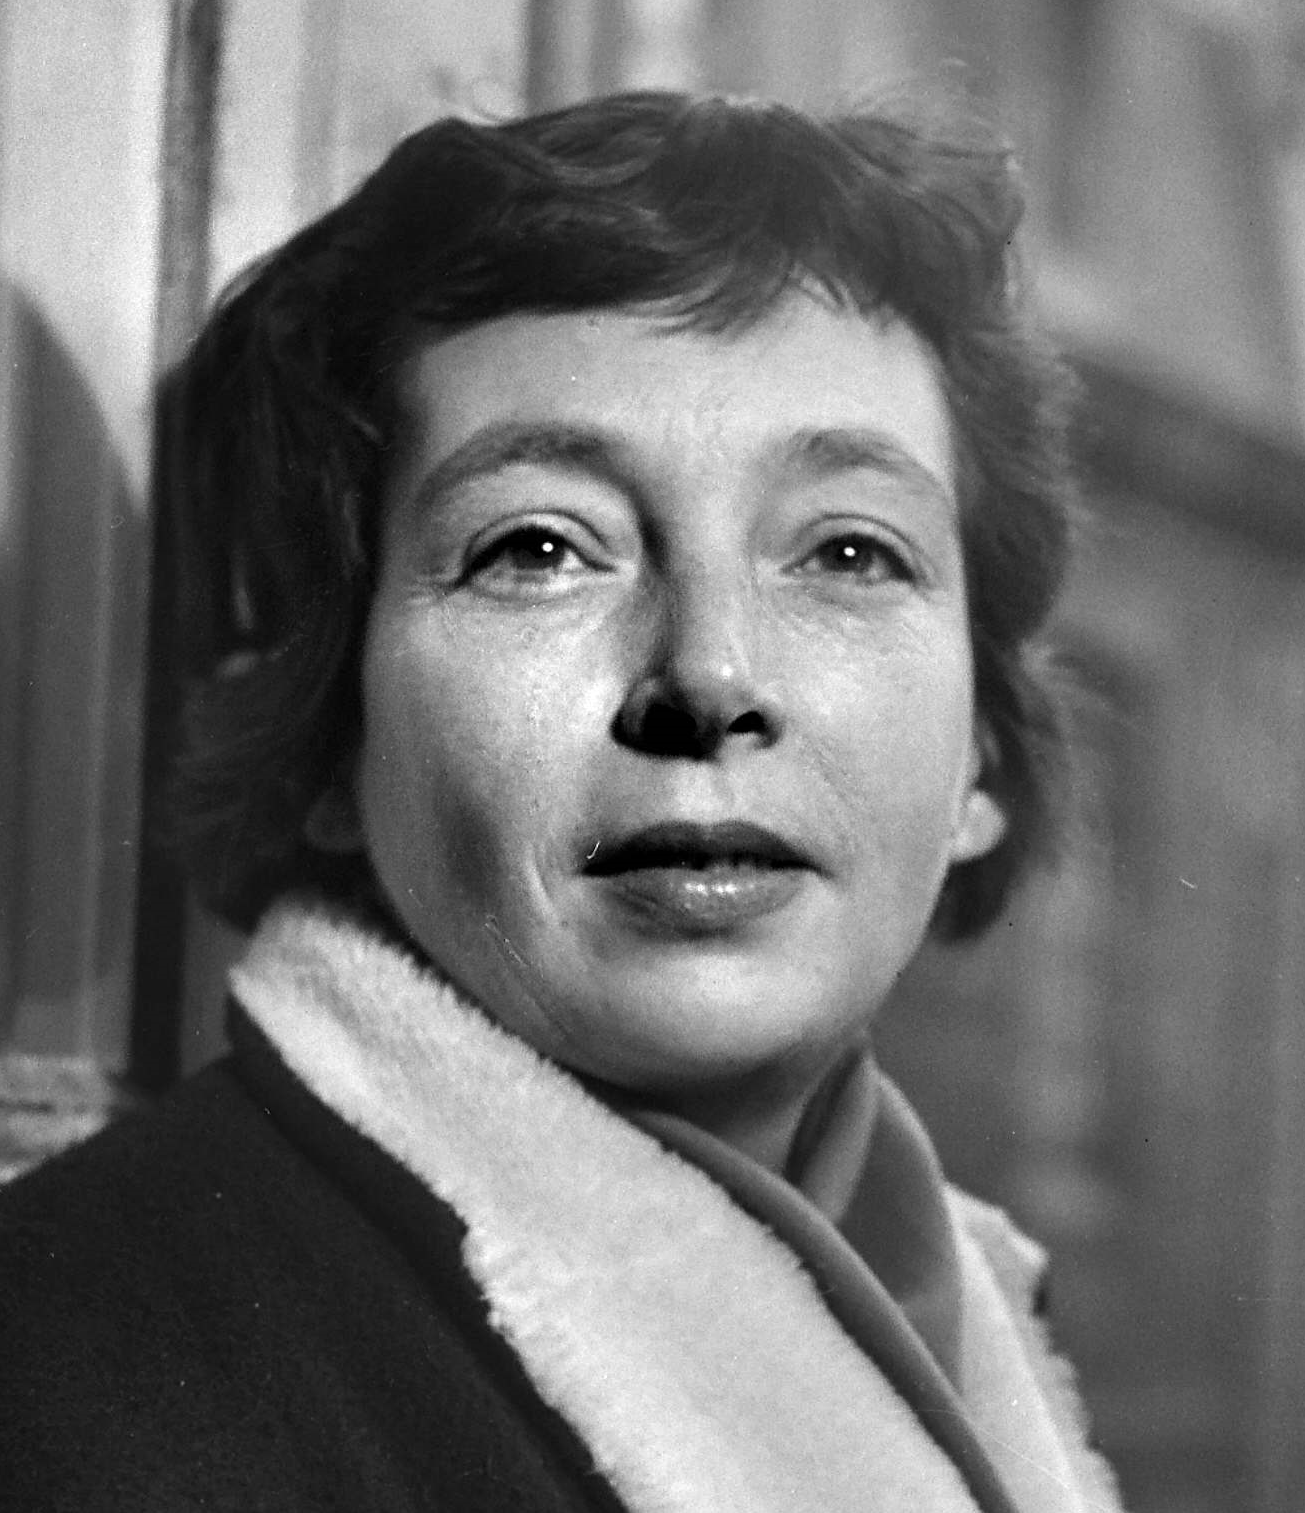 marguerite duras contributor photo, b&w close-up, leaning against blurred grey wall